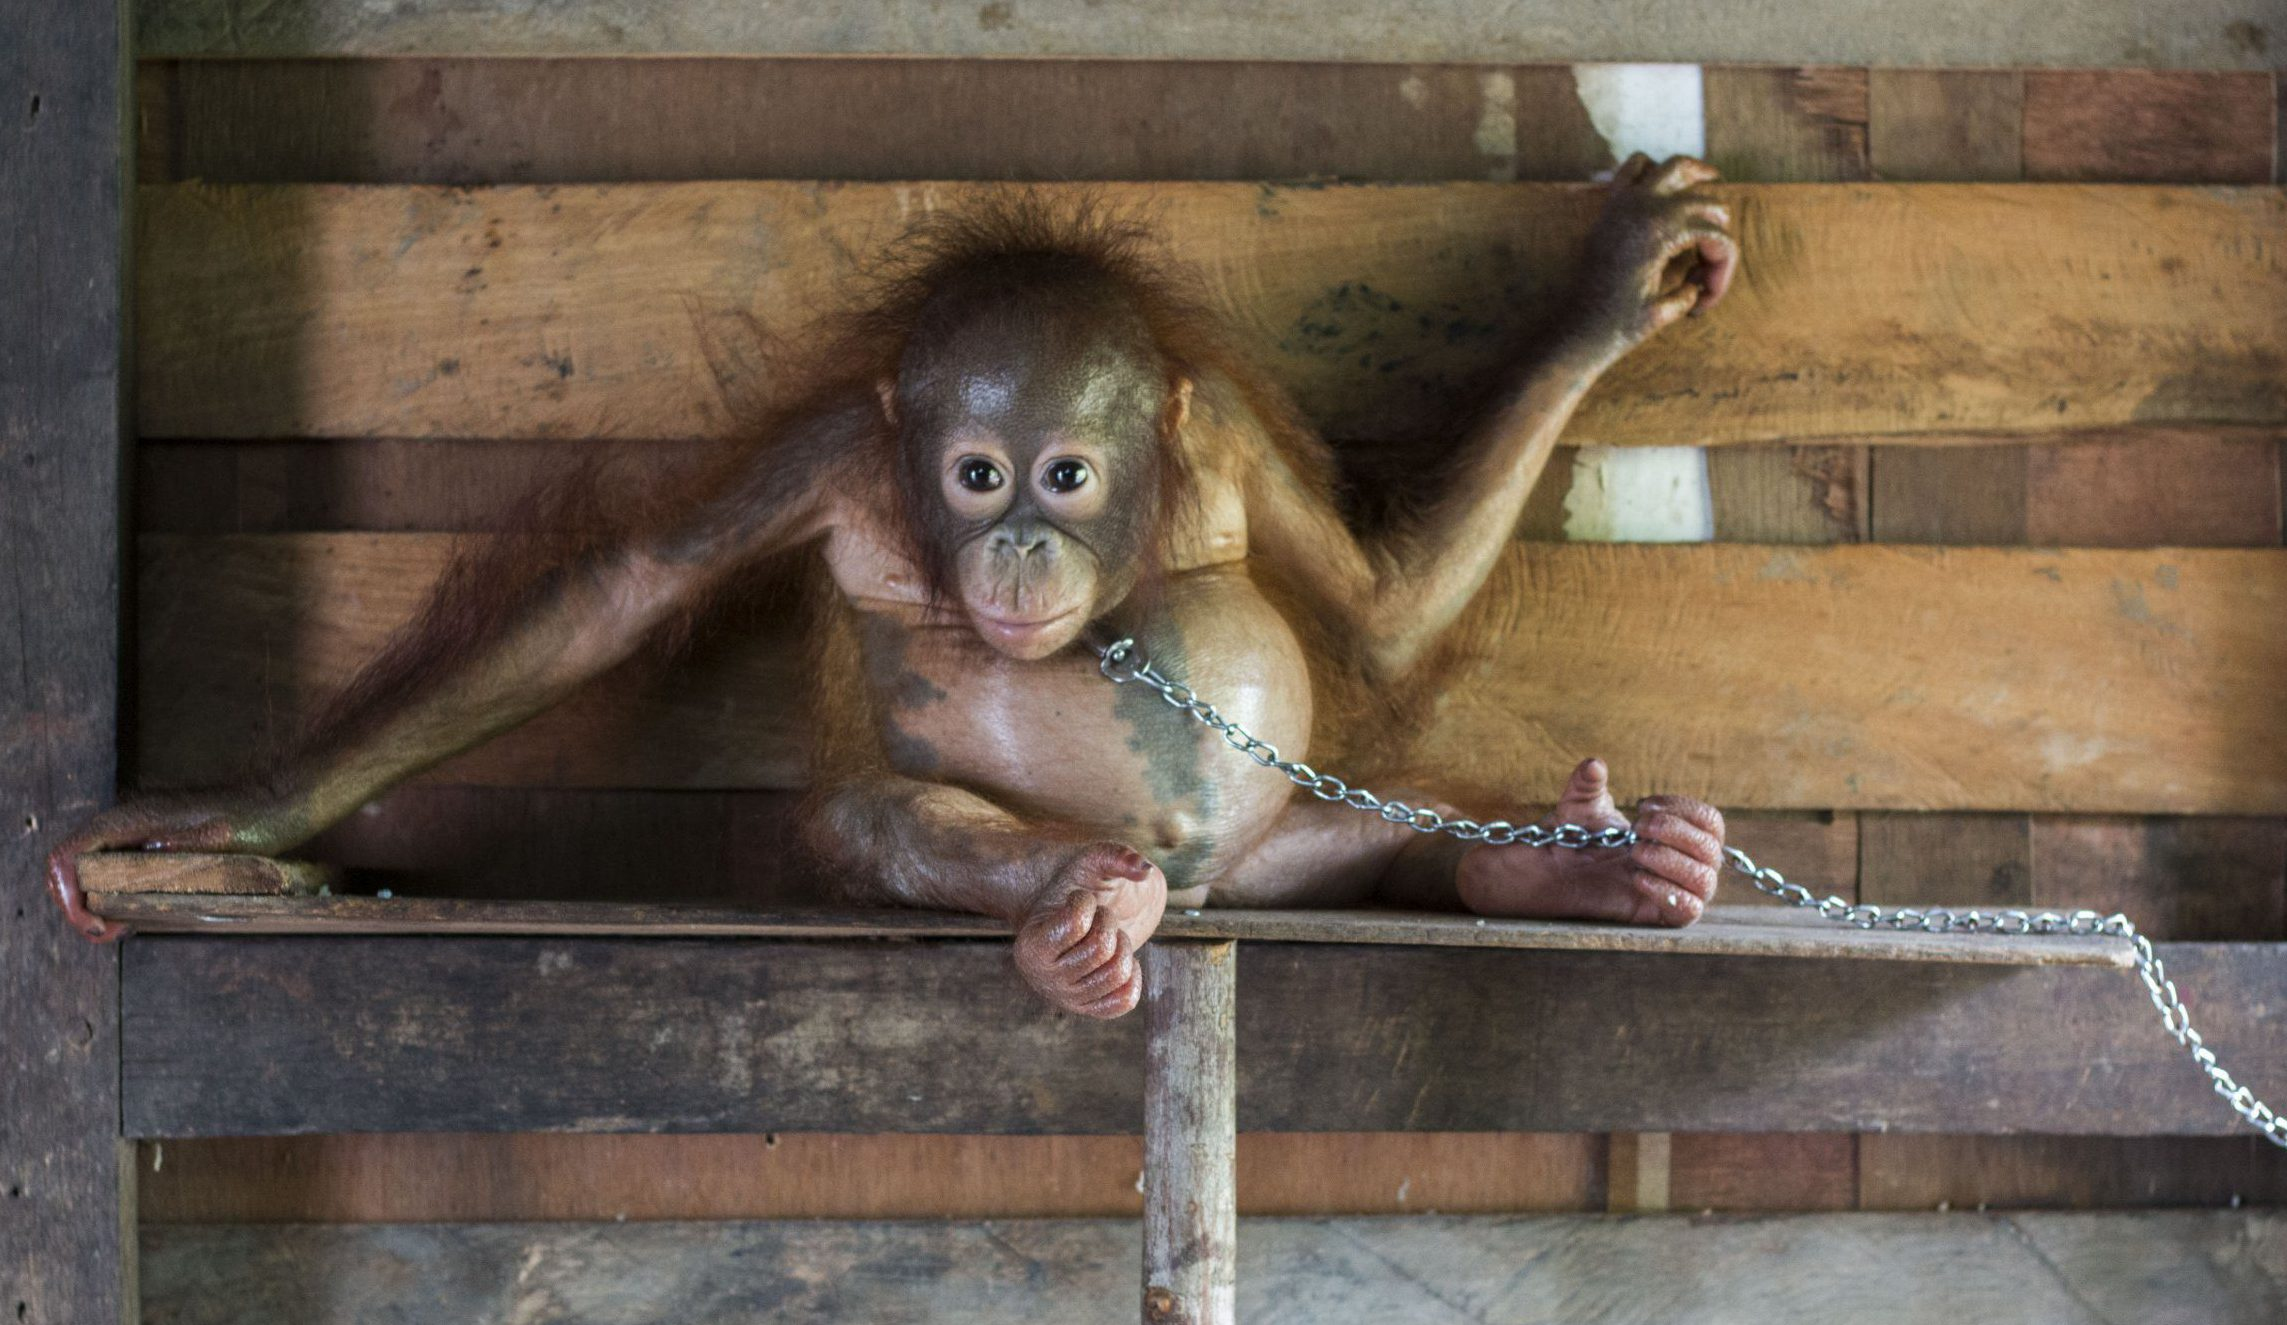 A baby orangutan has been rescued after spending six months chained by the neck to a narrow plank of wood in a family's kitchen. See National story NNAPE; The 18-month-old ape, named Bonika, was found chained so tightly around the neck that she was barely able to move from side to side, and was left stranded on the plank. But the International Animal Rescue (IAR) Orangutan Centre in Ketapang, West Borneo, heard about the orangutan and rushed to its aid 200km away. According to Bapak Hendrigus, the man who captured Bonika, he had been keeping her as a family pet since June when he claimed to have found her in the middle of a palm oil plantation. He was on his way to work at a rubber tree plantation when he said he spotted the little orangutan alone and looking thin, so he caught her and brought her home to live with his family. He says the ape fed on rice, sugar cane, biscuits, bread, mineral water and baby milk.